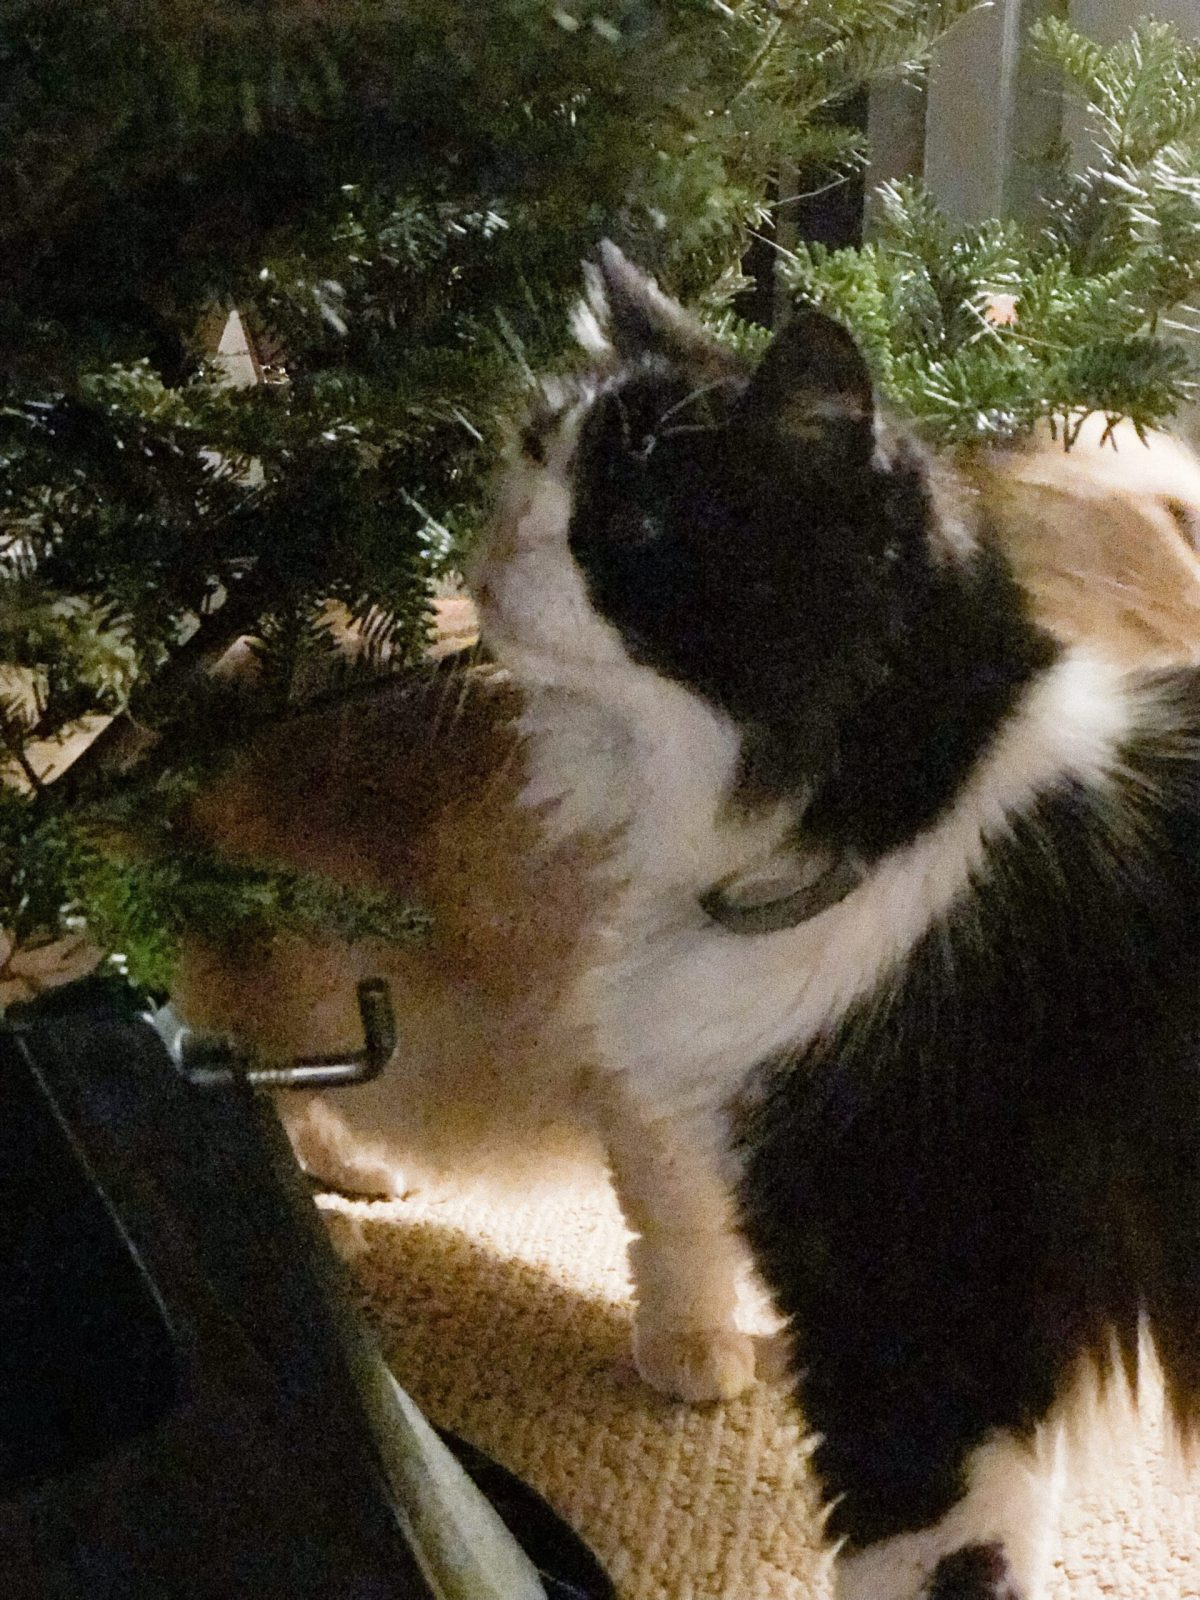 Black and white cat sniffing Christmas tree